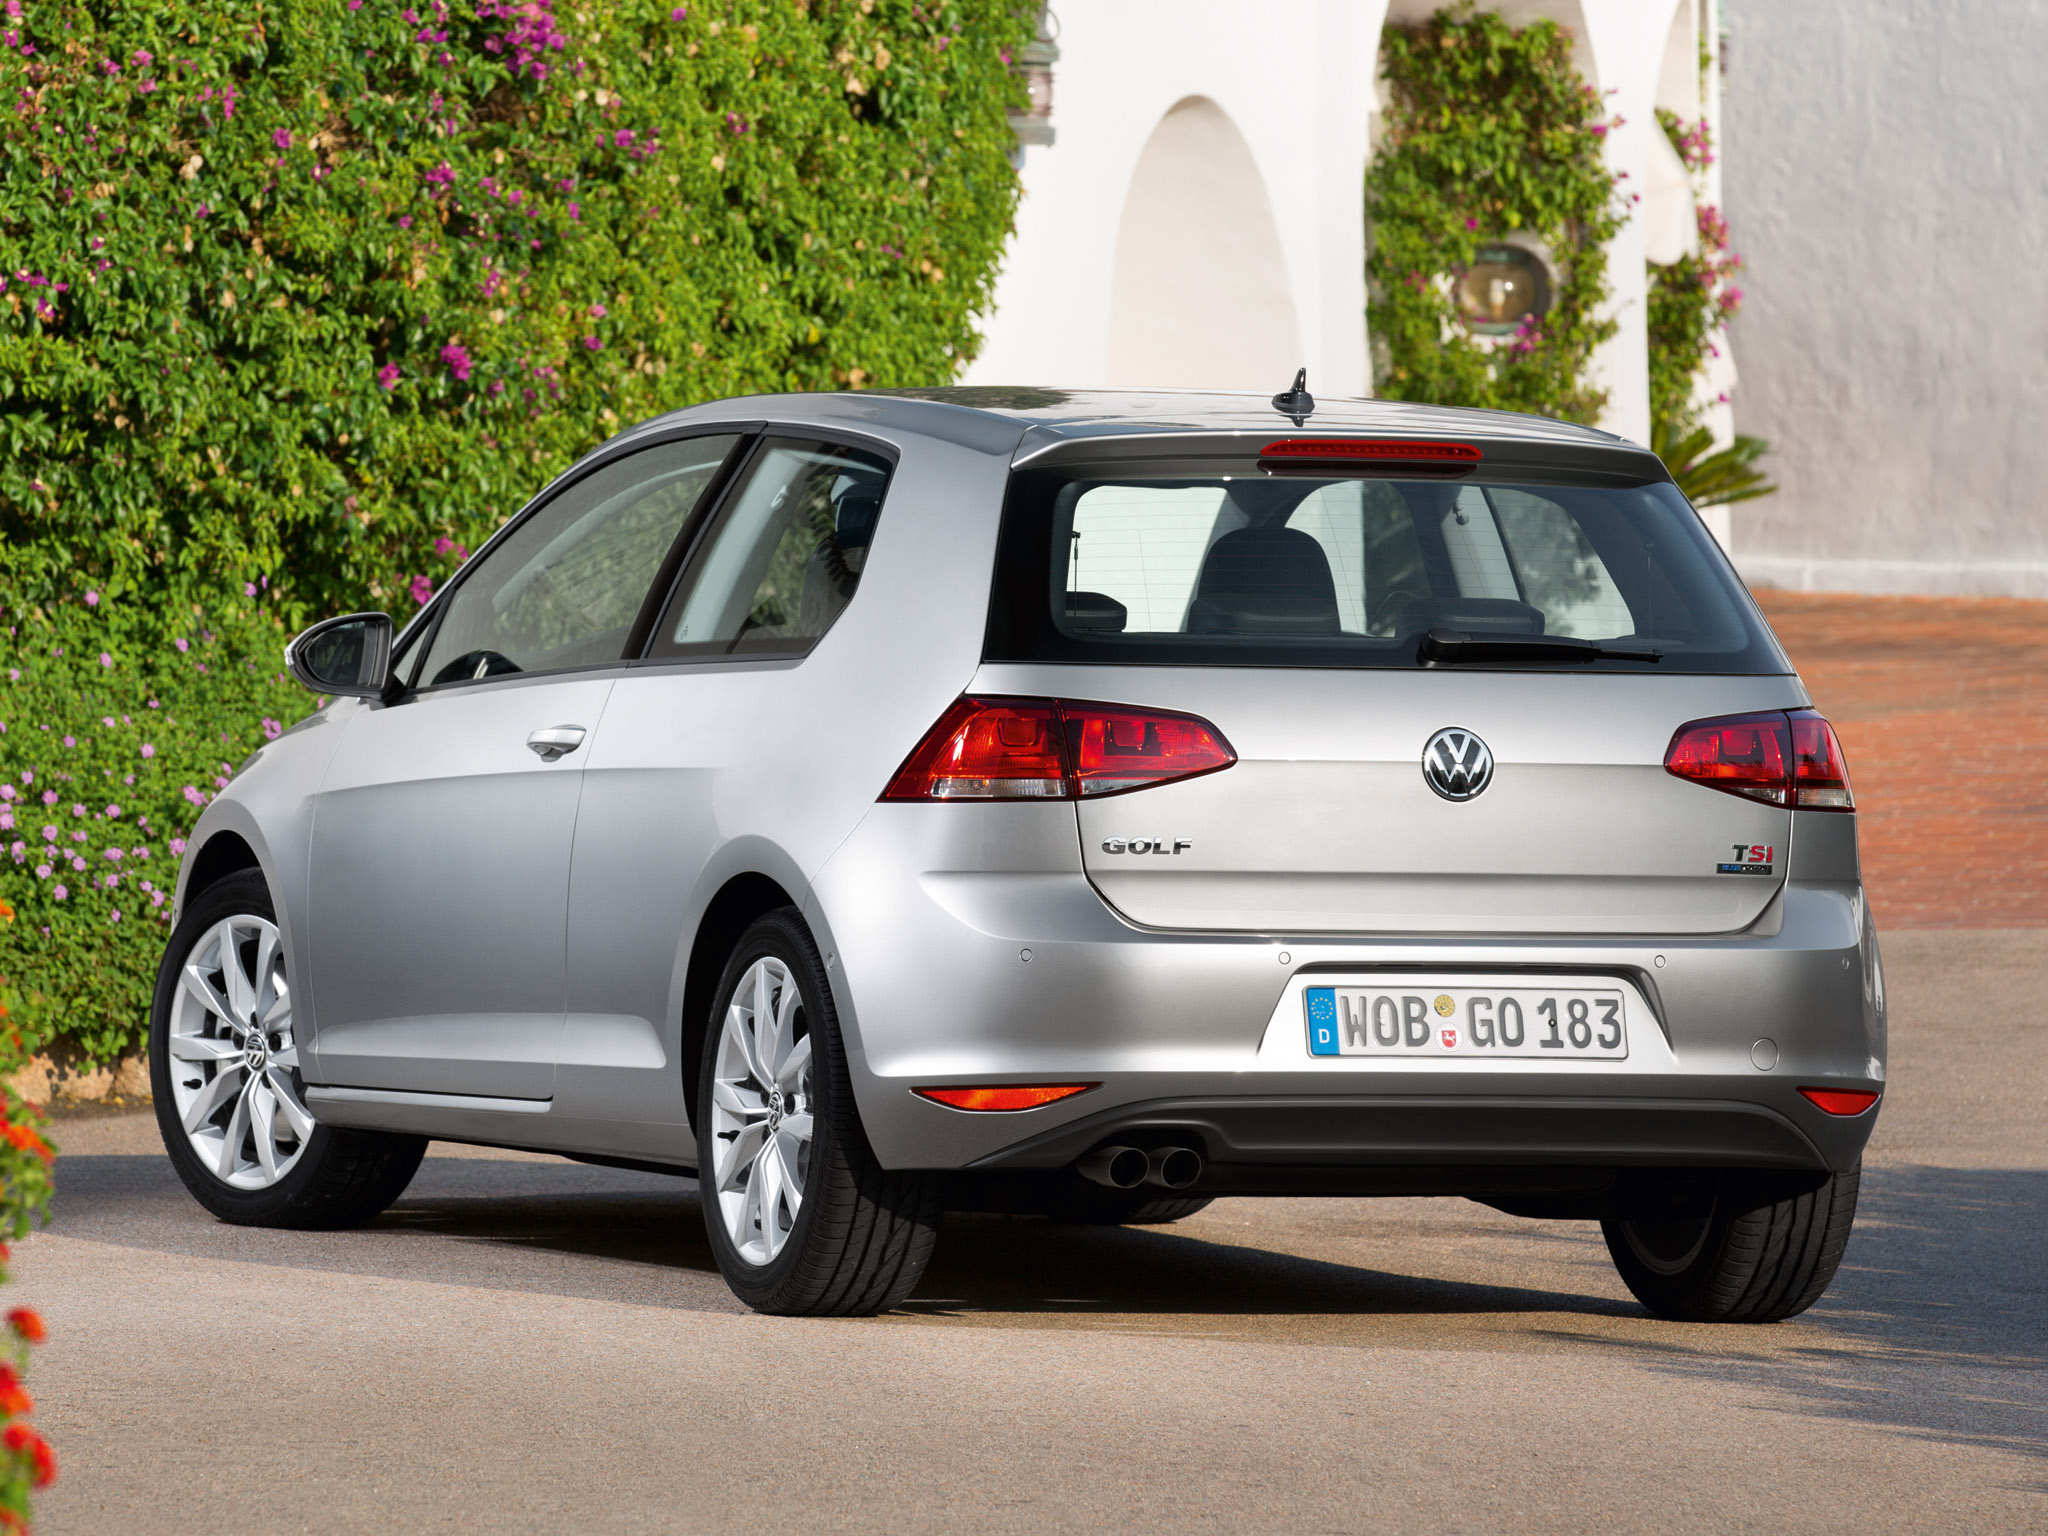 volkswagen golf tsi bluemotion 3 door 2013 volkswagen golf tsi bluemotion 3 door 2013 photo 13. Black Bedroom Furniture Sets. Home Design Ideas